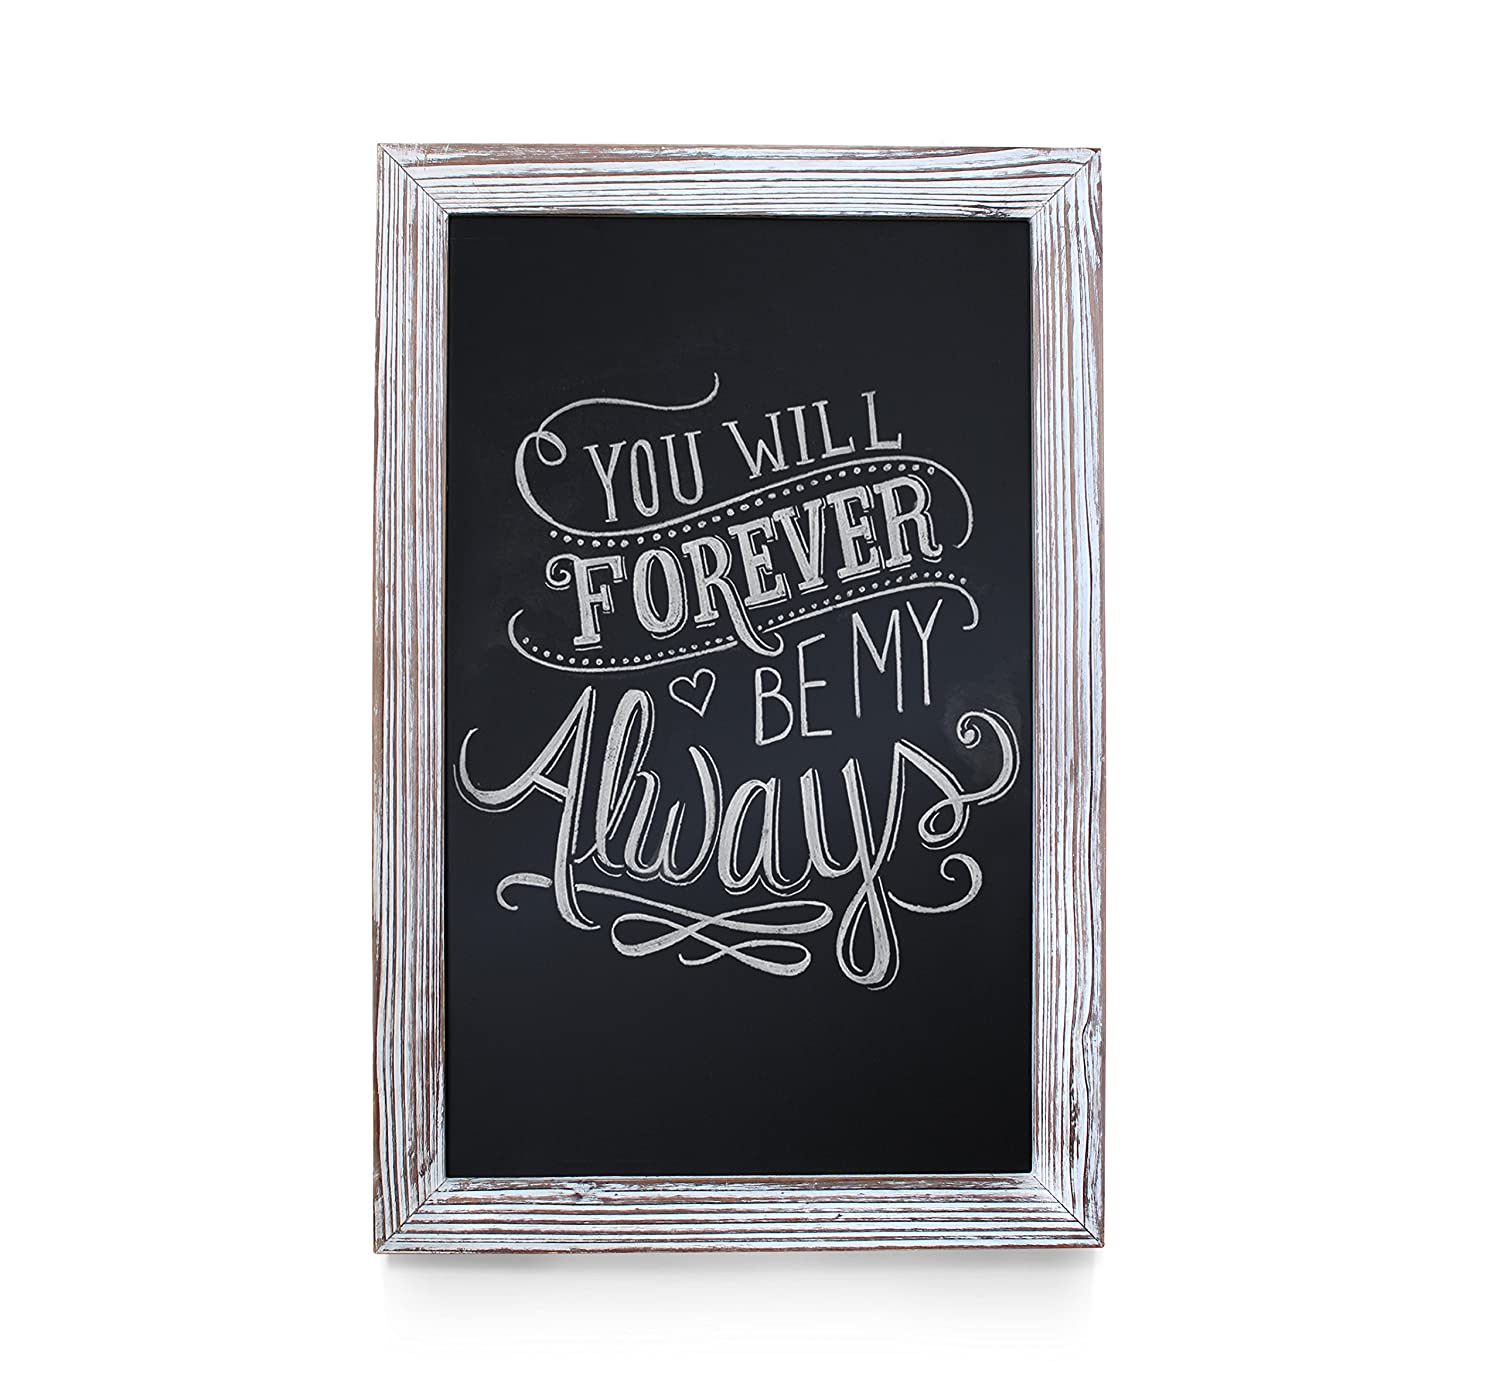 "HBCY Creations Rustic Whitewashed Magnetic Wall Chalkboard, Extra Large Size 20"" x 30"", Framed Decorative Chalkboard - Great for Kitchen Decor, Weddings, Restaurant Menus and More! … (20"" x 30"")…"